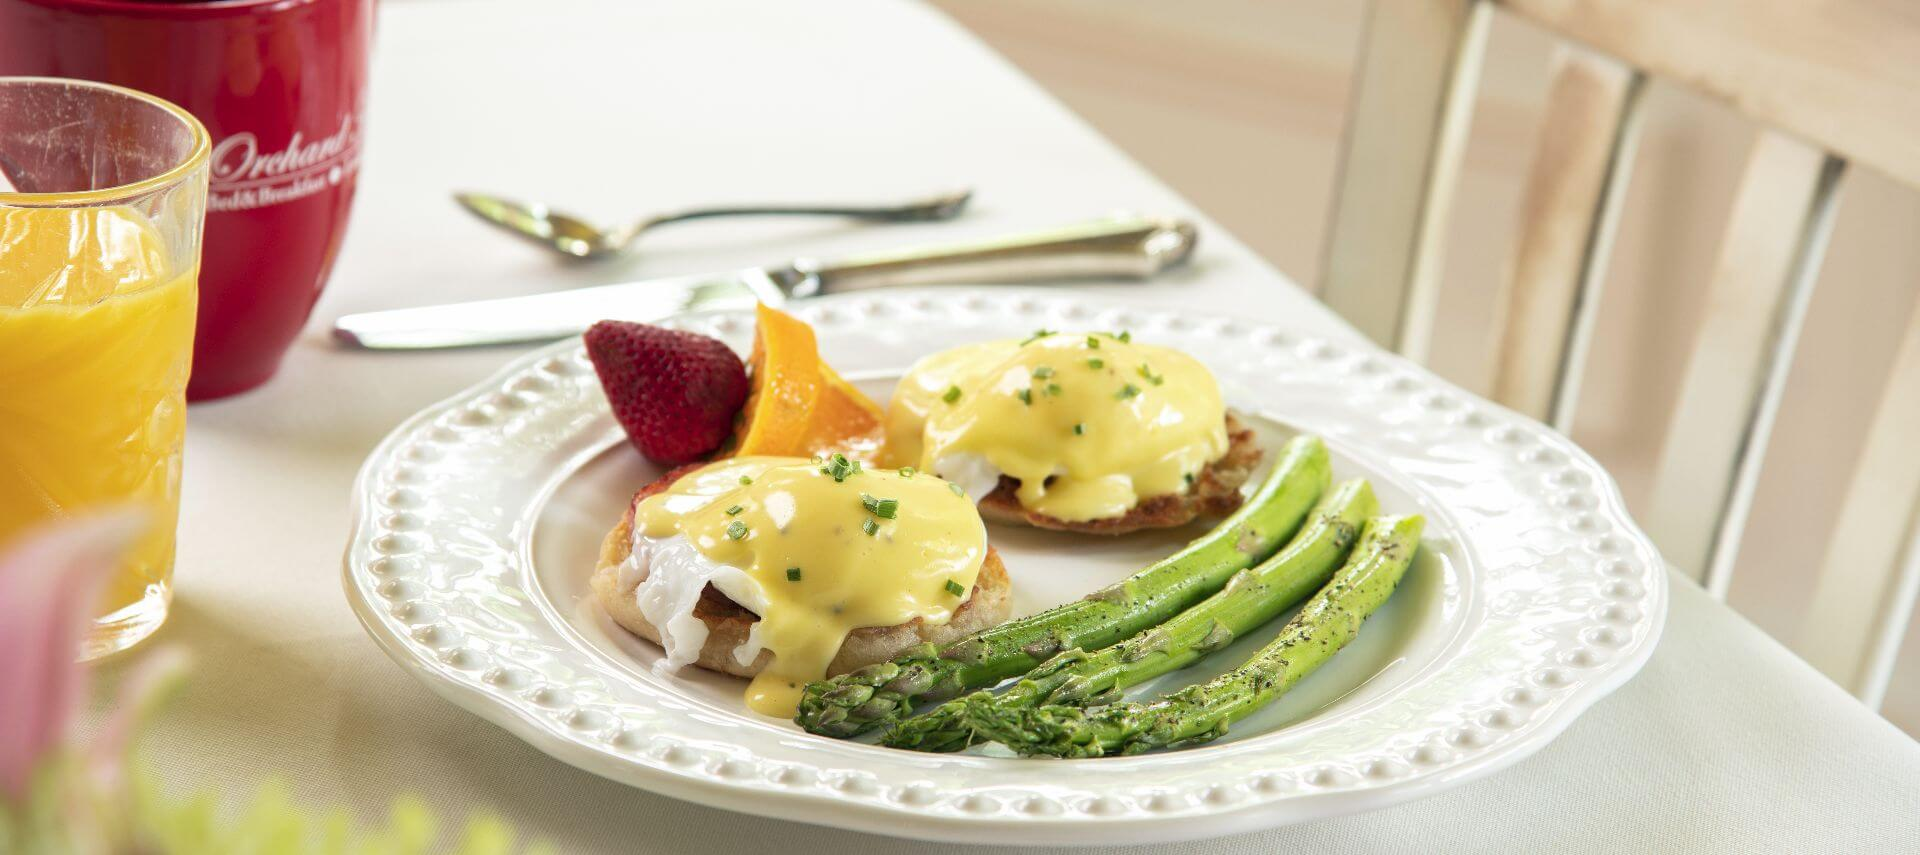 Eggs benedict served with asparagus on a white plate with fruit.